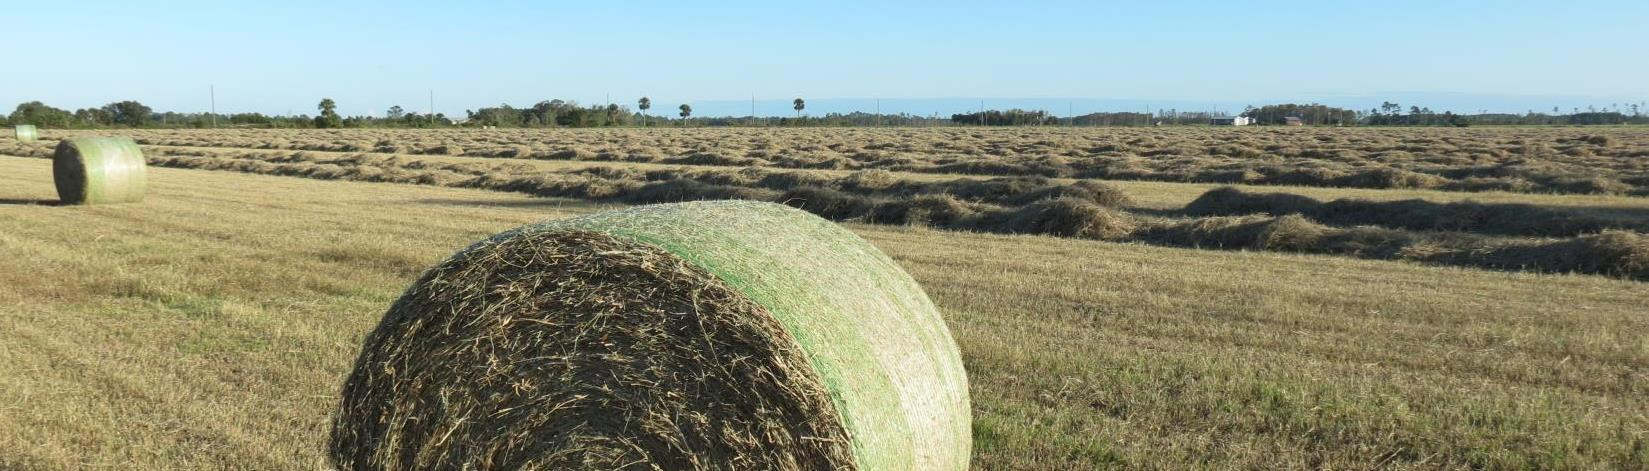 round hay bales in a field